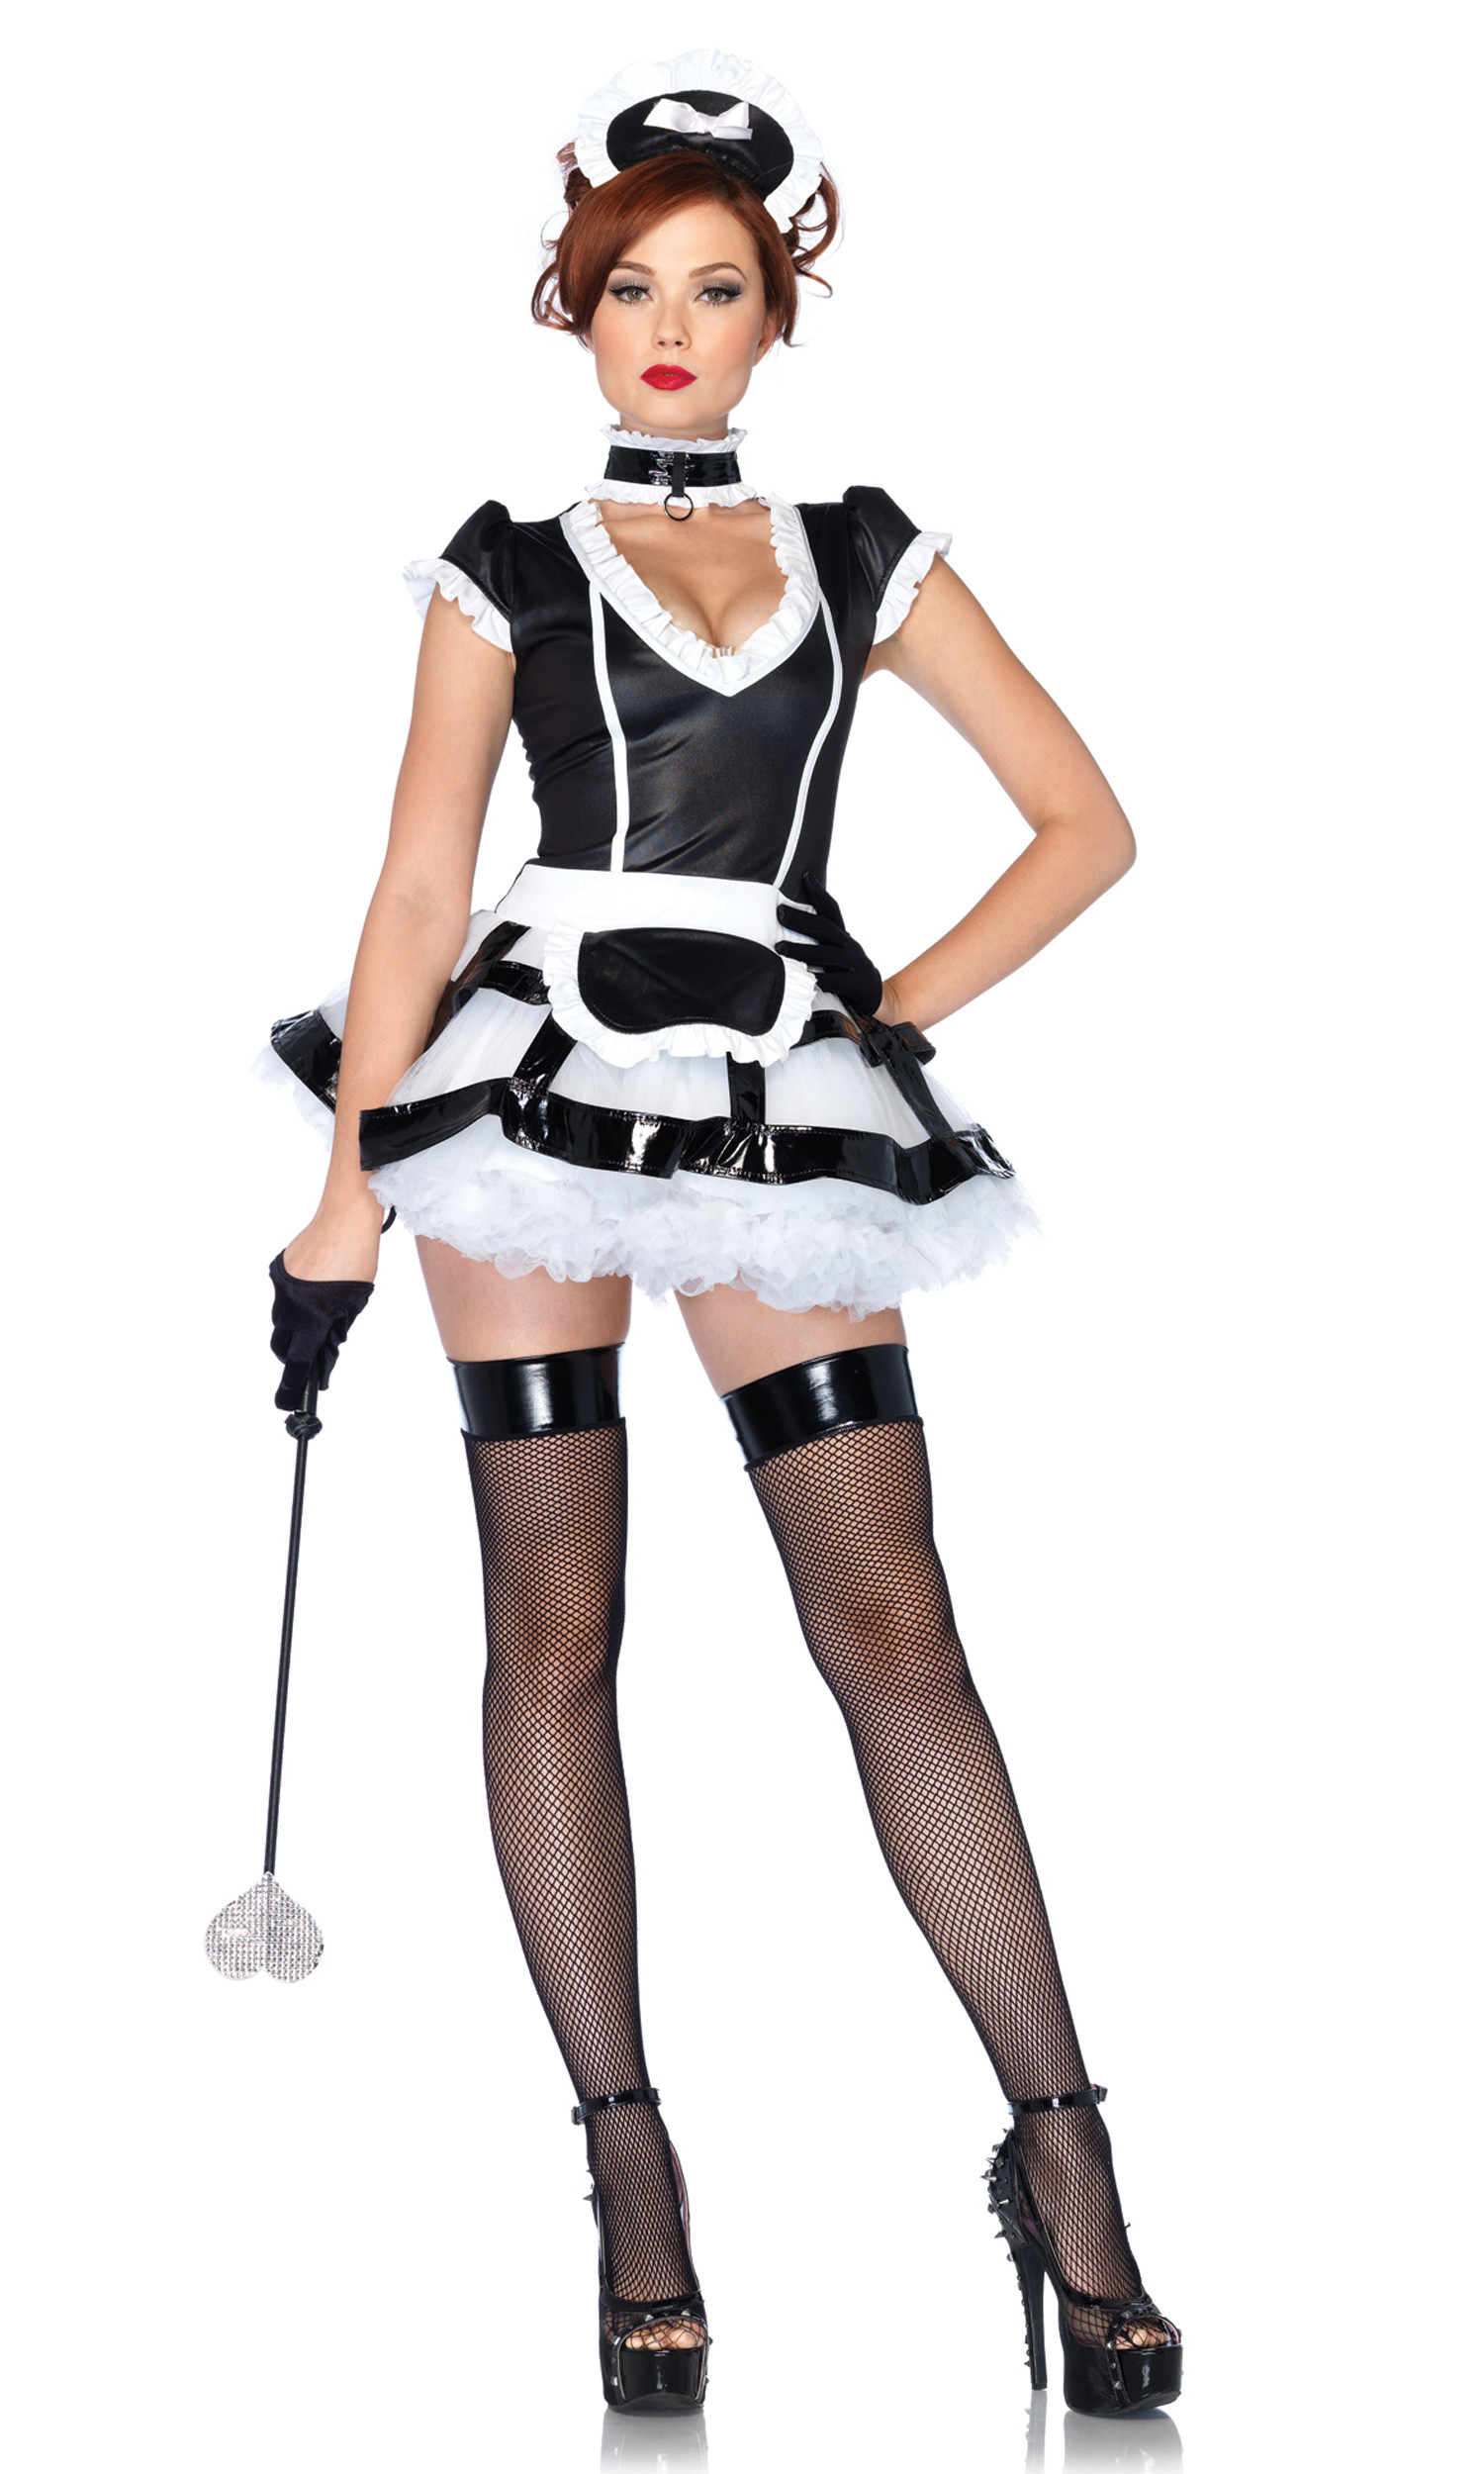 French Maid Costume DIY  Top Seller Mistress Maid French Maid Costume by Leg Avenue